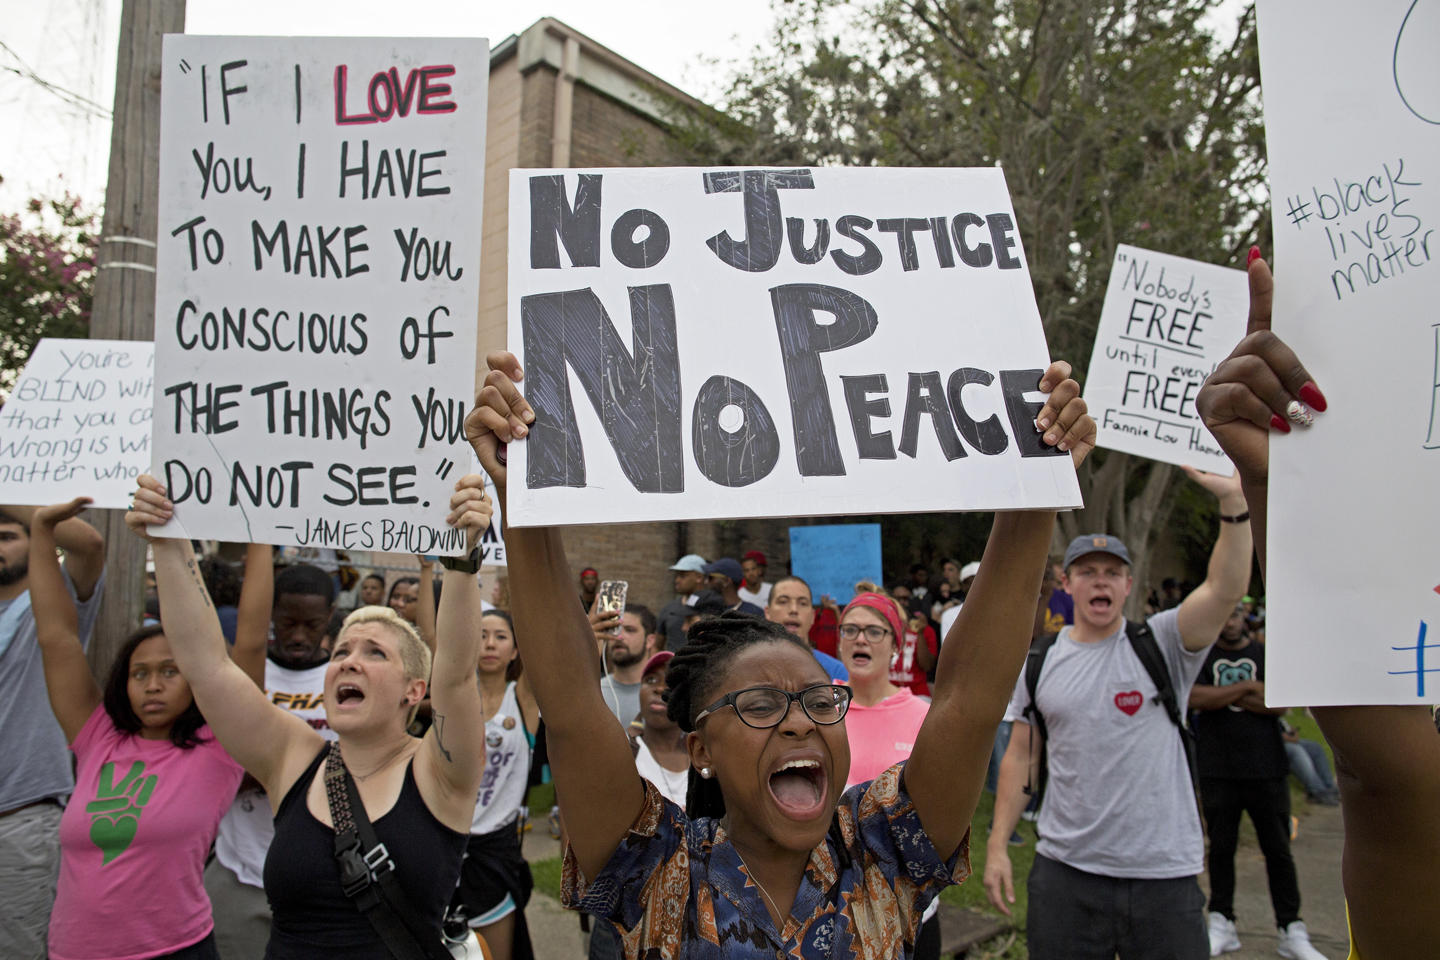 Police and protesters demonstrate in a residential neighborhood in Baton Rouge, La. on Sunday, July 10, 2016. After an organized protest in downtown Baton Rouge protesters wondered into residential neighborhoods and toward a major highway that caused the police to respond by arresting protesters that refused to disperse.